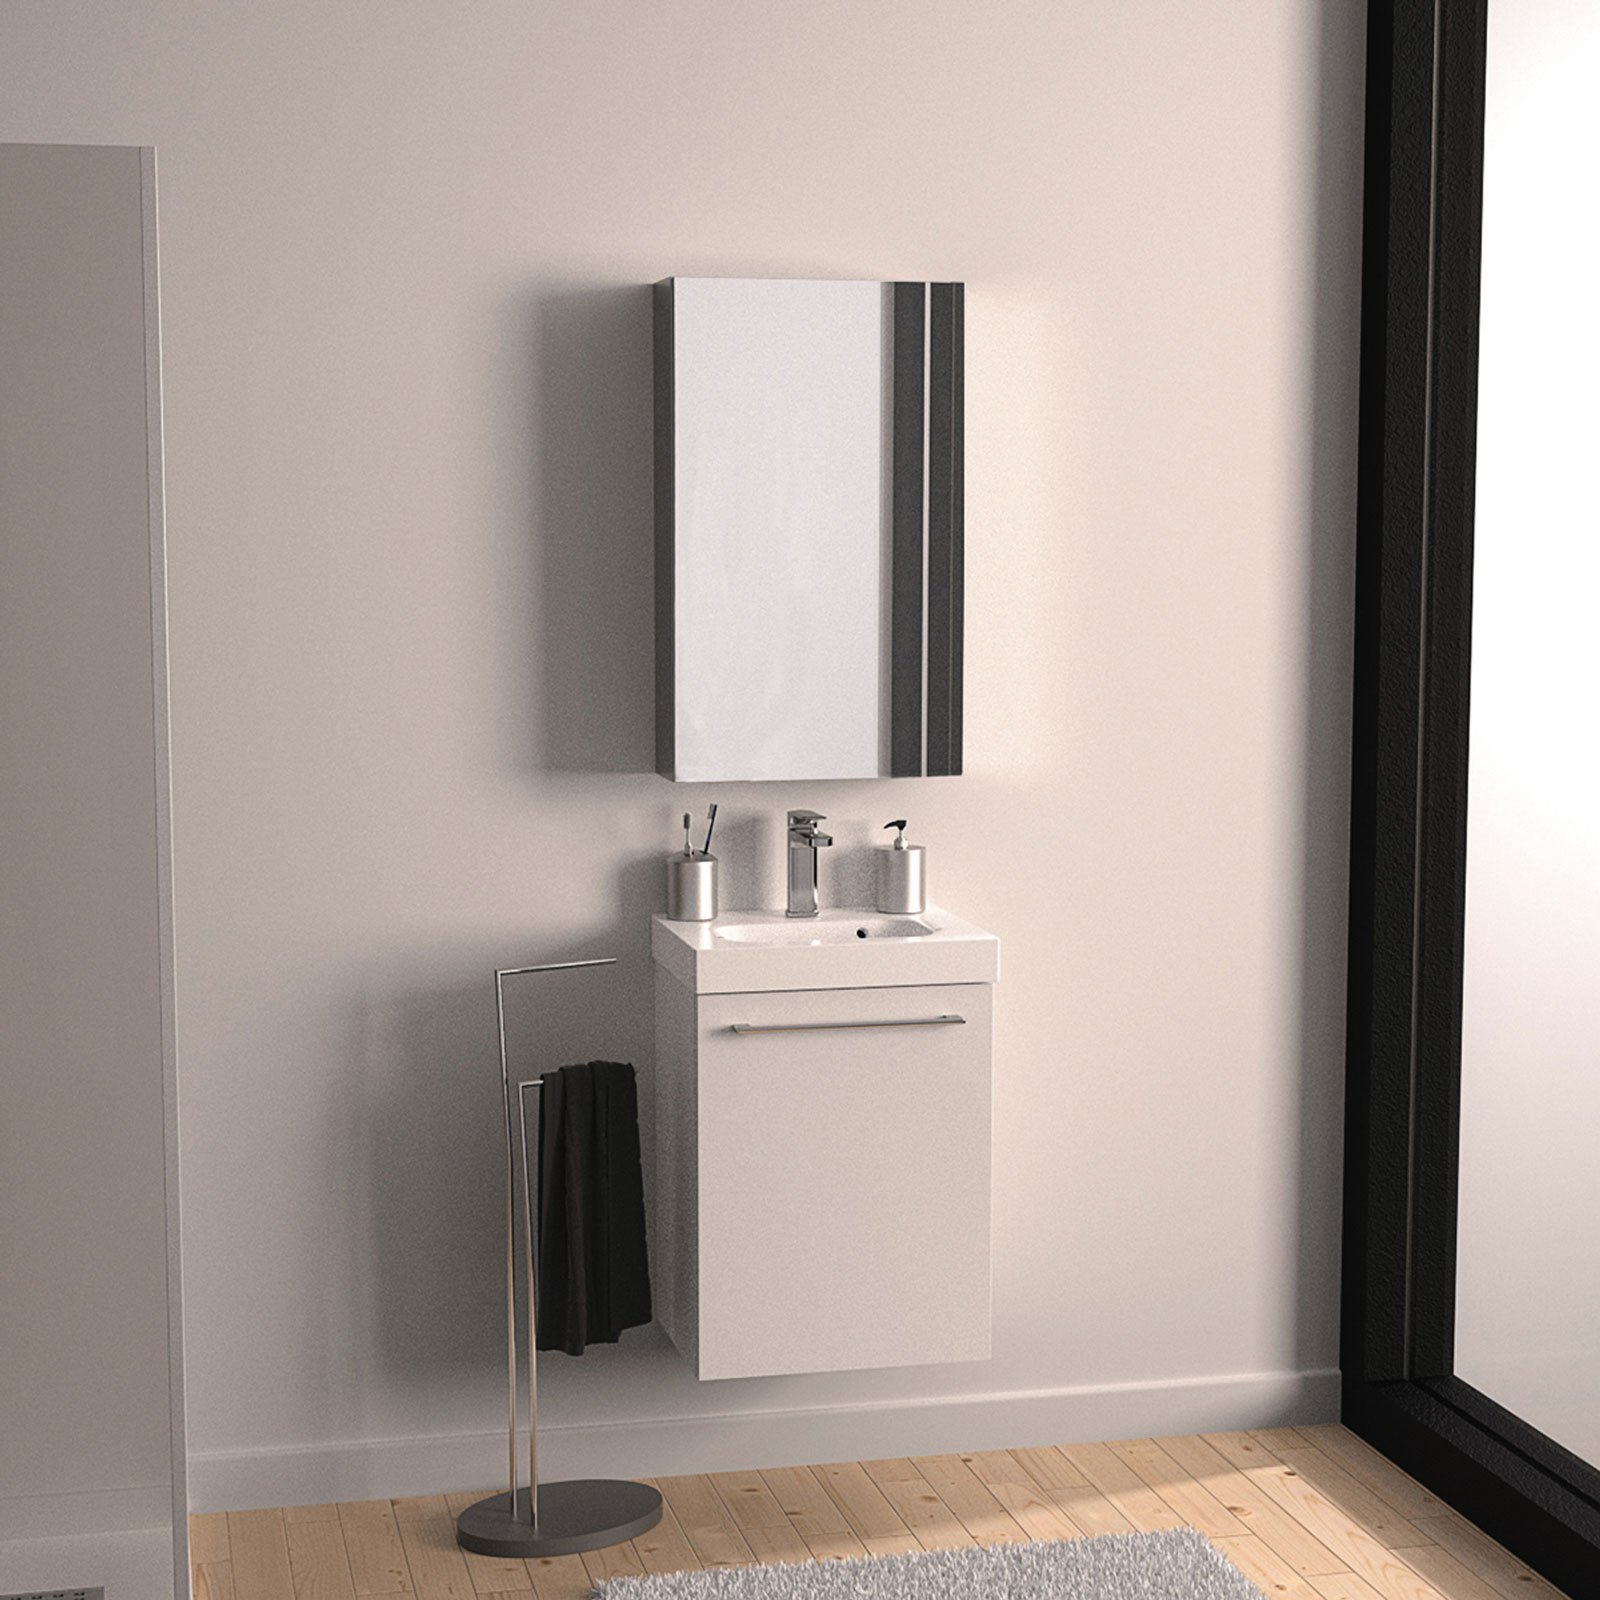 mobili lavabo piccoli per risparmiare centimetri preziosi cose di casa. Black Bedroom Furniture Sets. Home Design Ideas